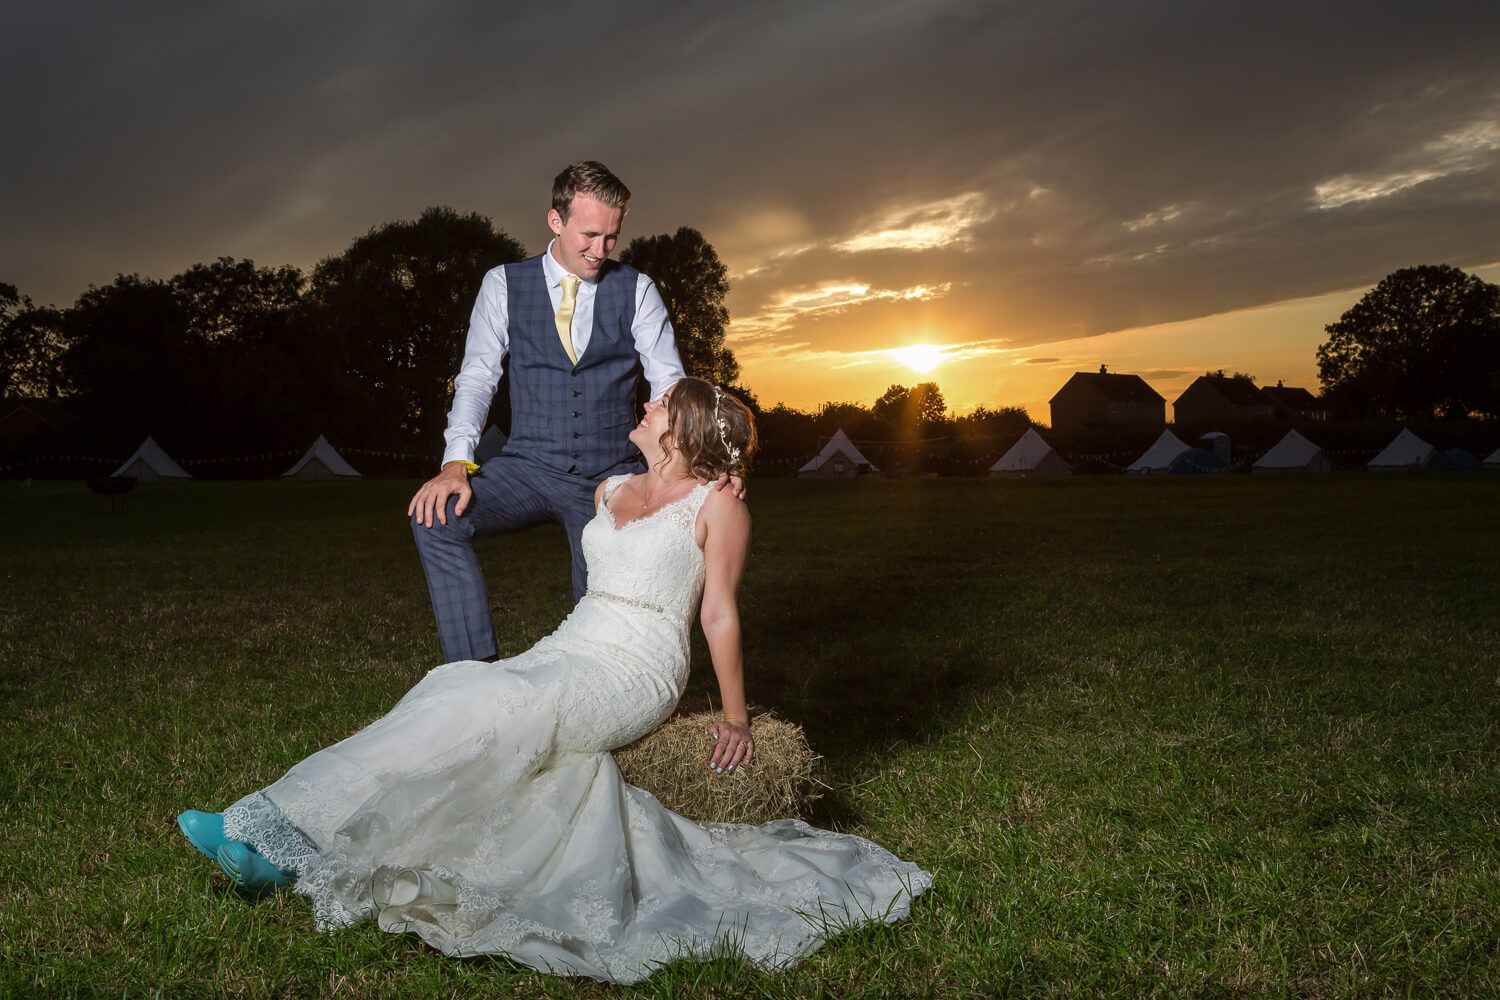 bride and groom on hay bail at sunset